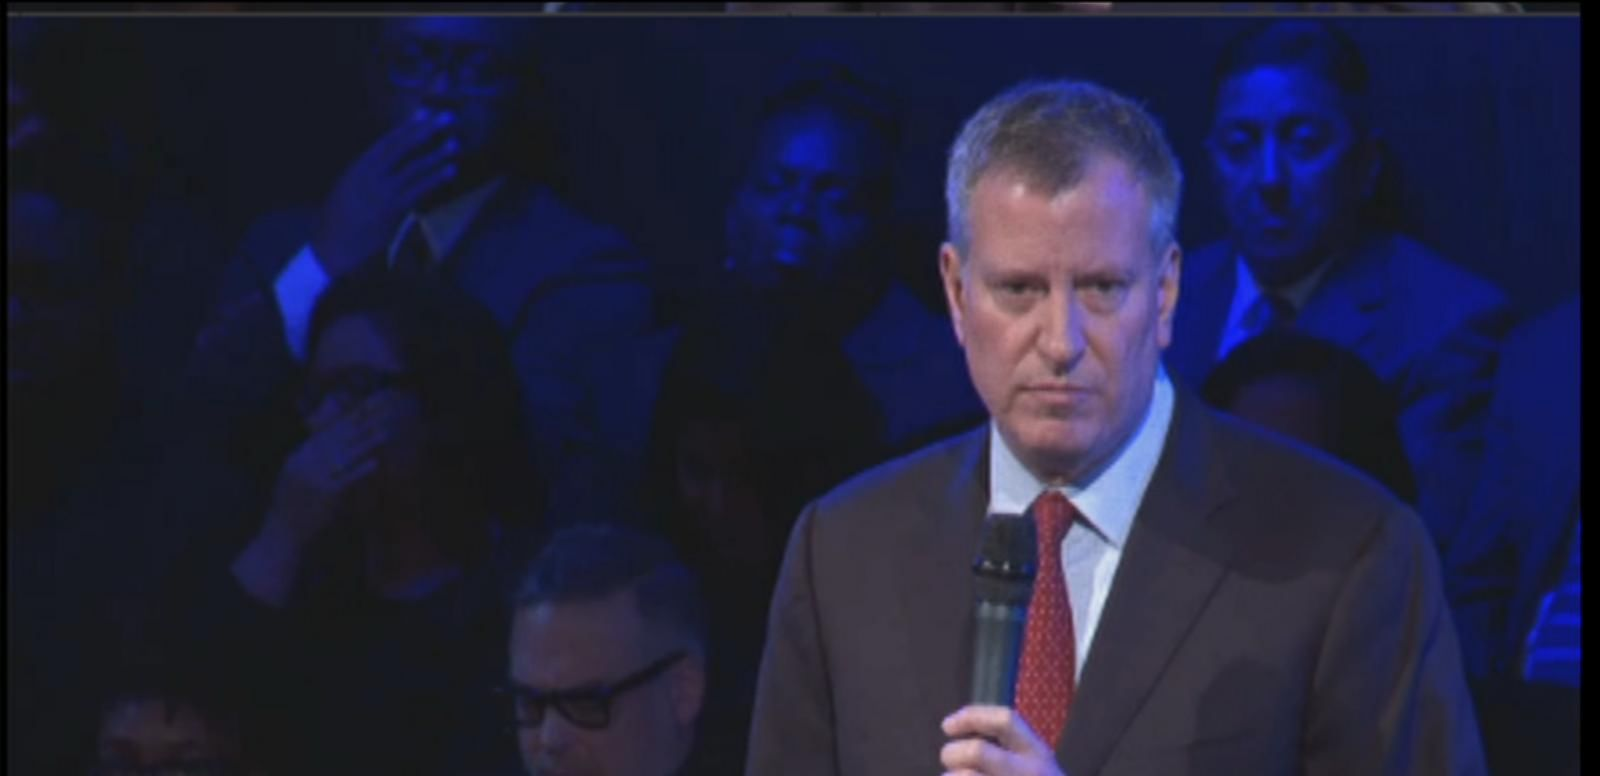 VIDEO: NYC Mayor Bill de Blasio Delivers Remarks at Slain NYPD Officer's Funeral